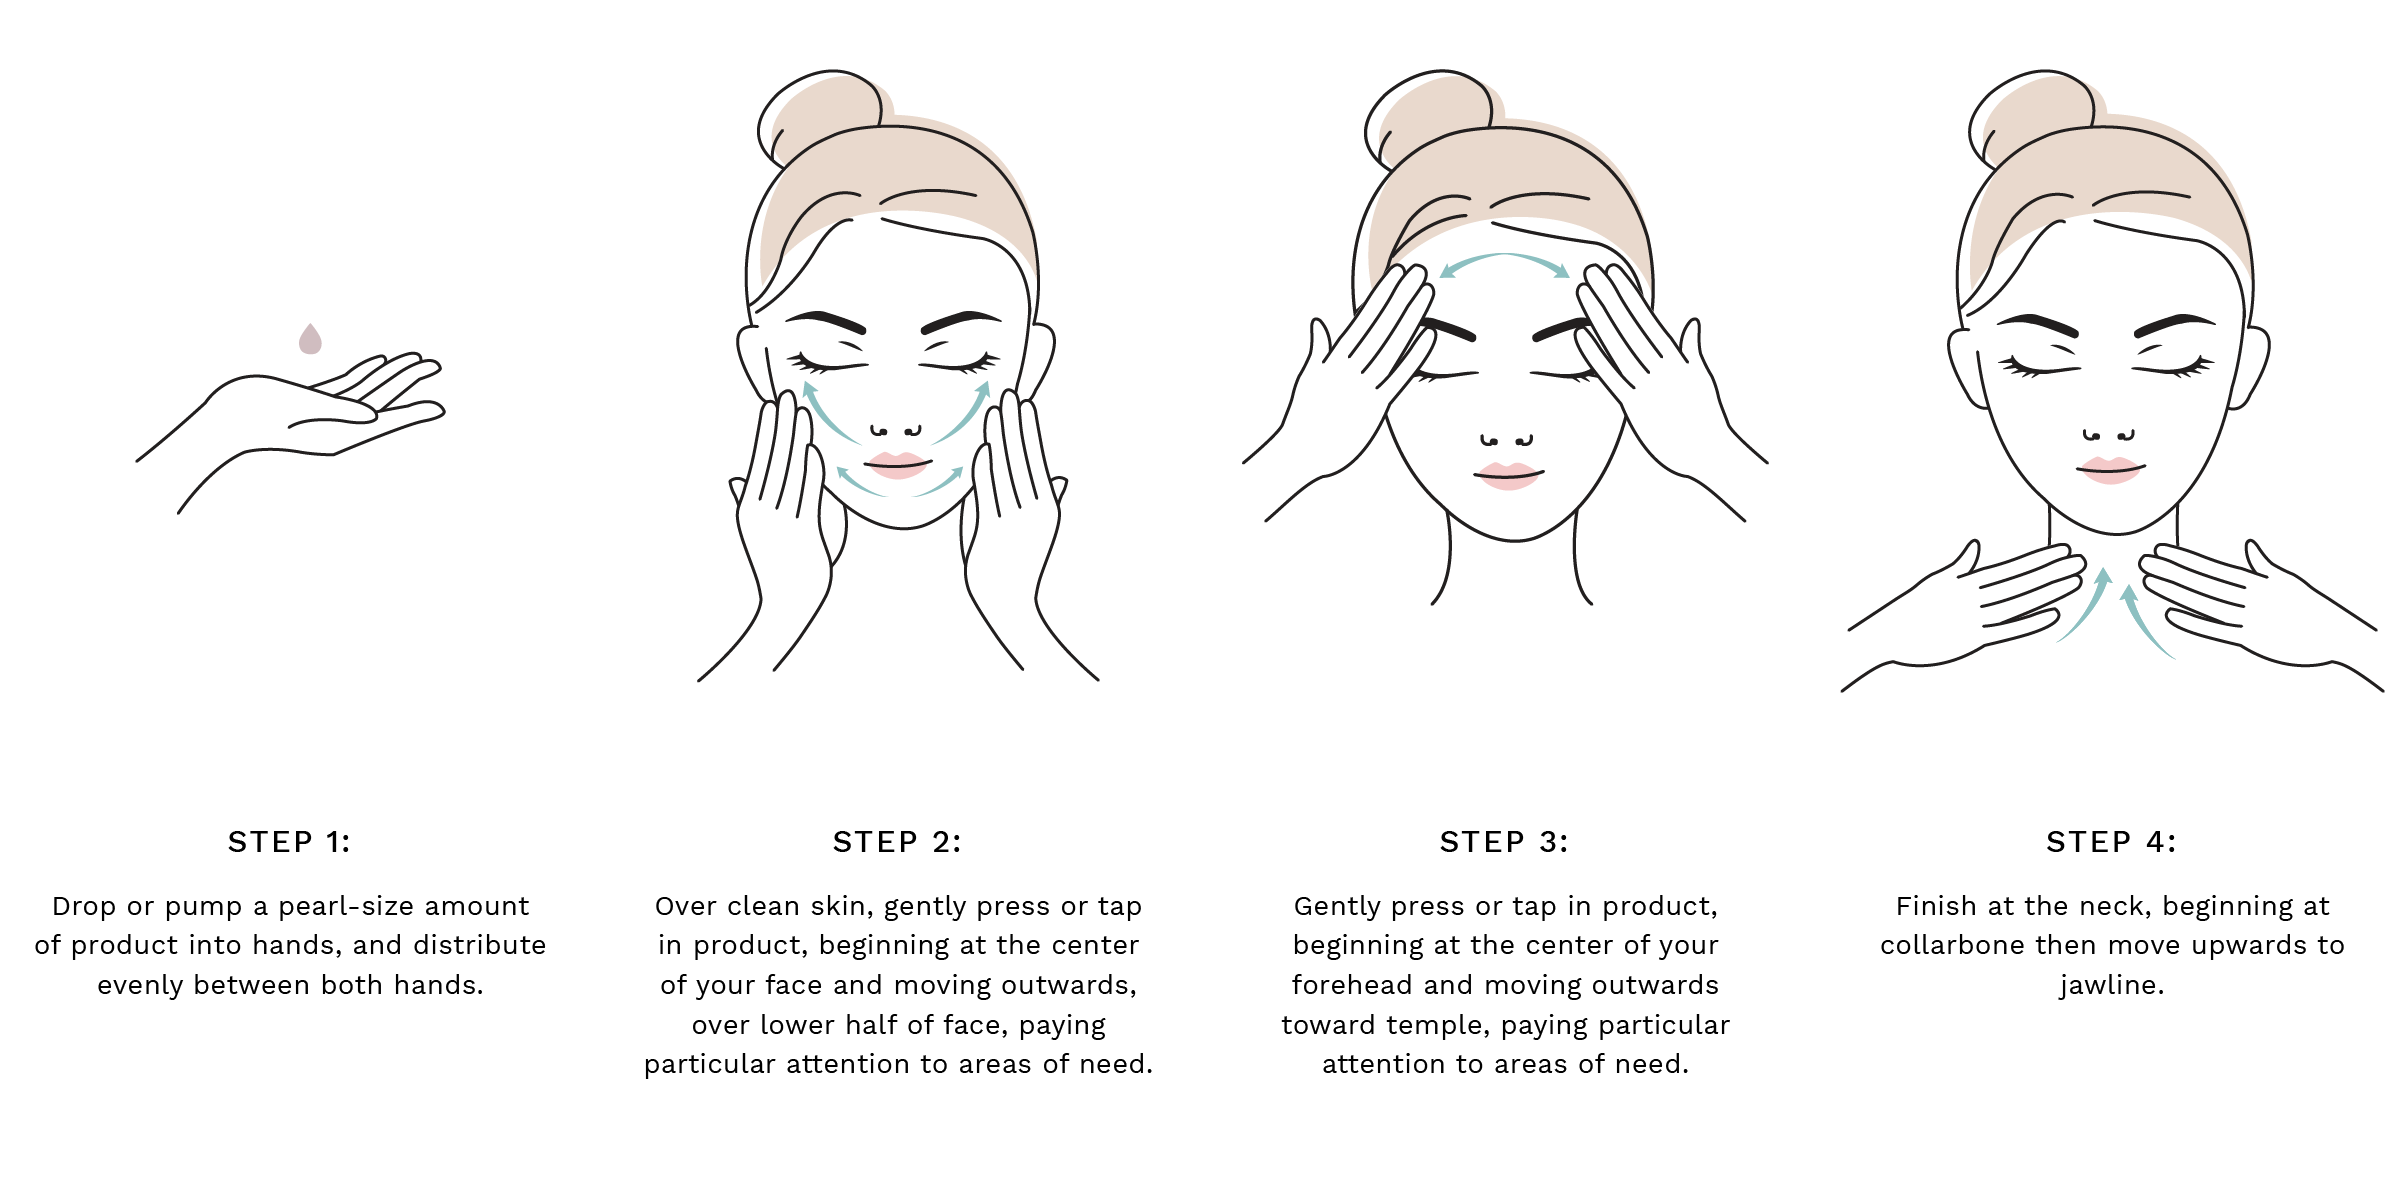 Step 1: Drop or pump a pearl-size amount of product into hands, and distribute evenly between both hands. Step 2: Over clean skin, gently press or tap in product, beginning at the center of your face and moving outwards, over lower half of face, paying particular attention to areas of need. Step 3: Gently press or tap in product, beginning at the center of your forehead and moving outwards toward temple, paying particular attention to areas of need. Step 4: Finish at the neck, beginning at collarbone then move upwards to jawline.